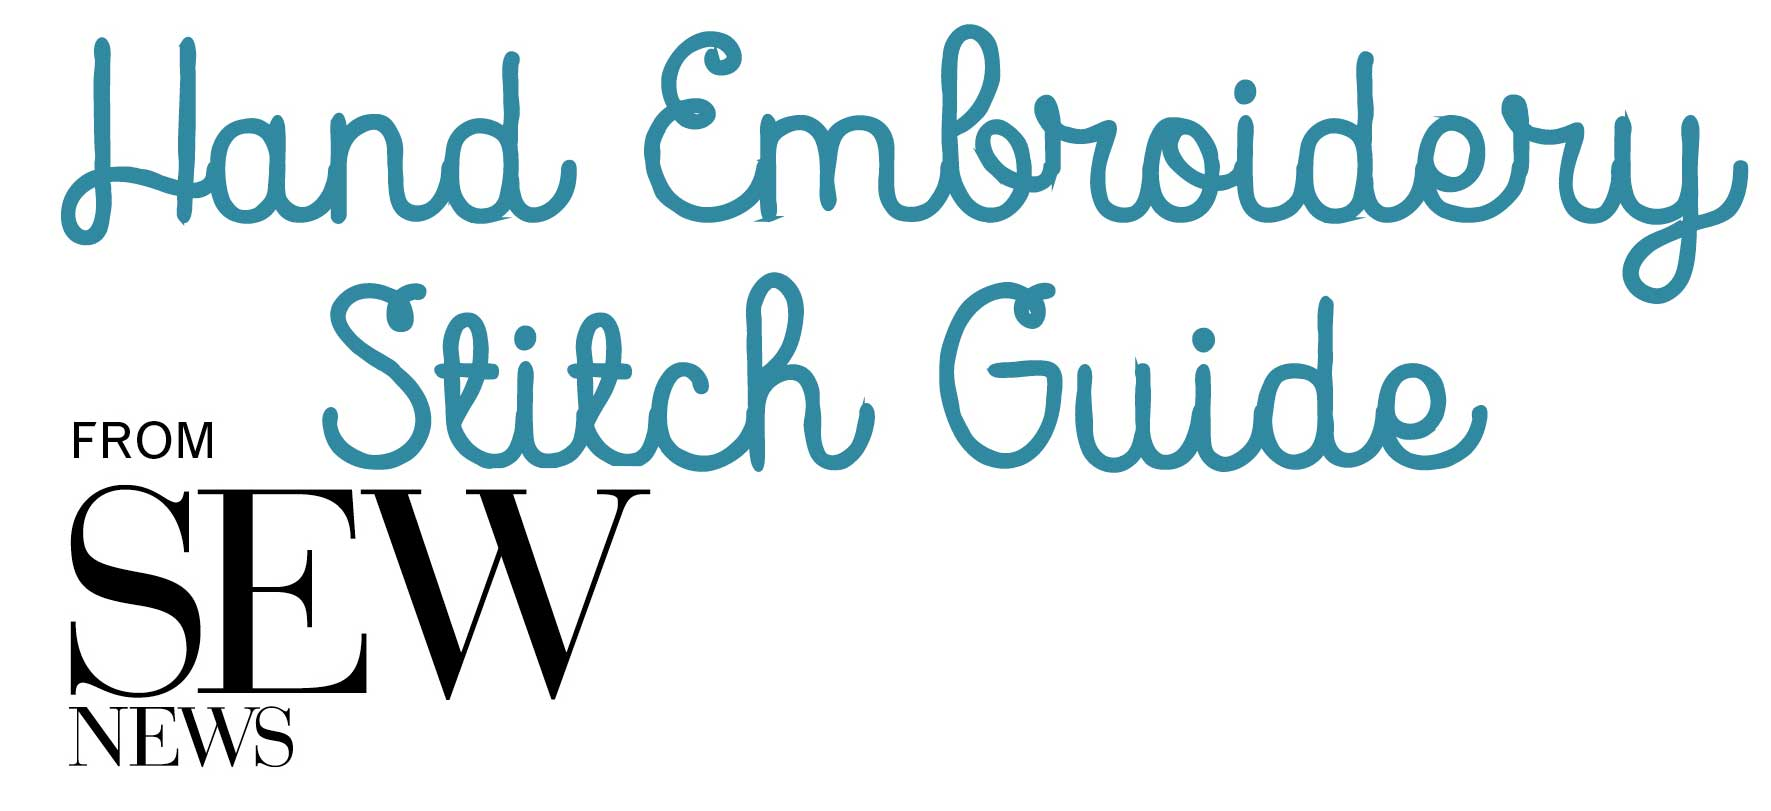 Guide To Hand Embroidery Stitches Sew Daily